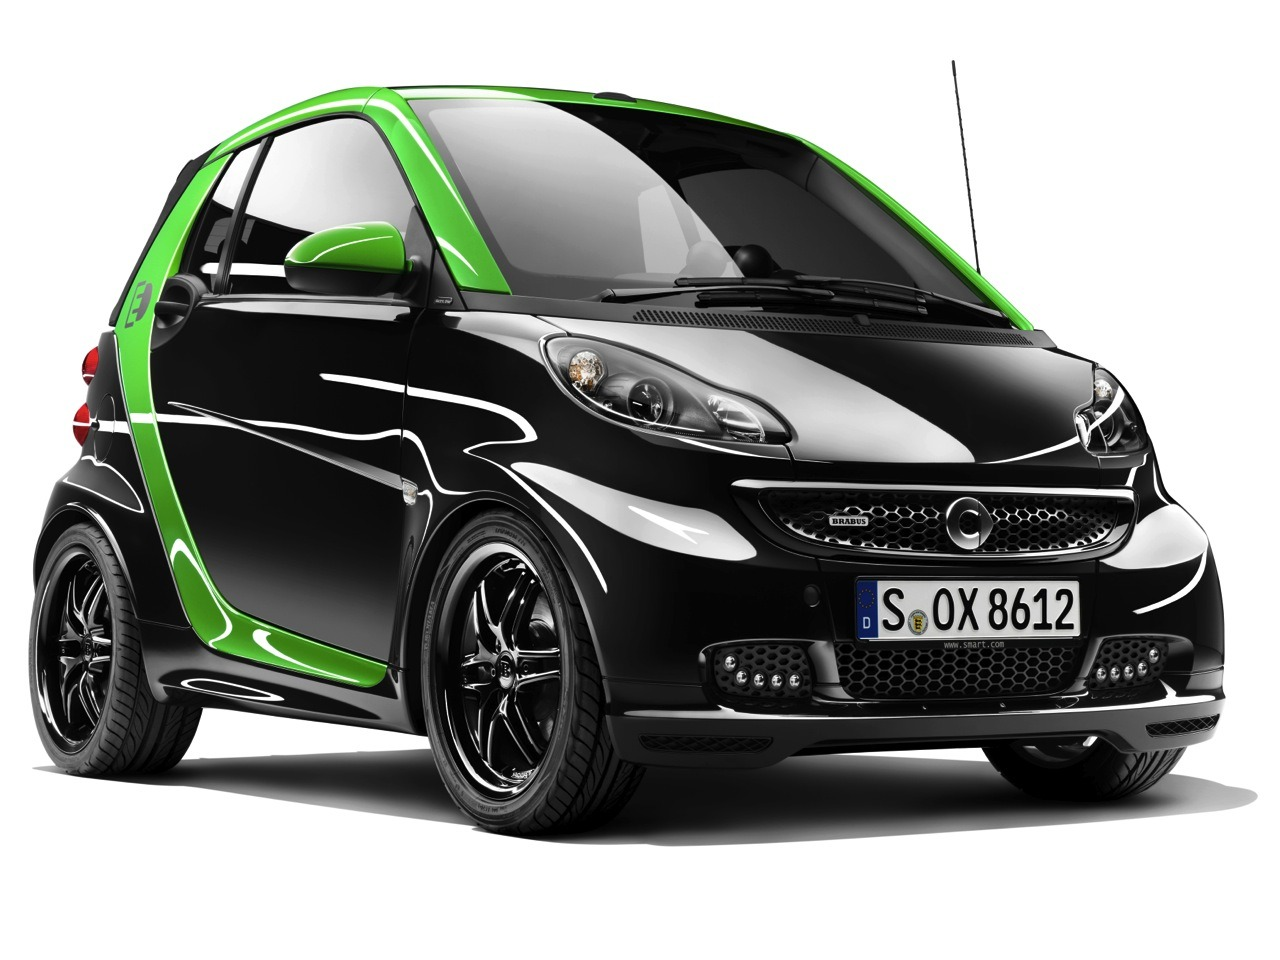 """Smart unveiling Brabus-edition Fortwo EV, e-bike in Geneva"" Daimler's Smart minicar  division will unveil both a battery-electric version of the Smart Brabus  special-edition line and a Smart Brabus electric bike at the Geneva Motor Show this year. The Smart Brabus electric drive Fortwo will be available in 12 countries by the end of the year. Parent company Daimler notes the model will include touches such as 17-inch alloy wheels, an  ""electric green"" interior. The diminutive runabout will deliver about 80  horsepower, though the German automaker hasn't specified a  single-charge range. Meanwhile, Smart's Brabus ebike will have an electric motor that will  deliver 500 watts of power, enough for a top speed of 25 miles per hour.  It will also be available at Smart dealers by the end of the year."